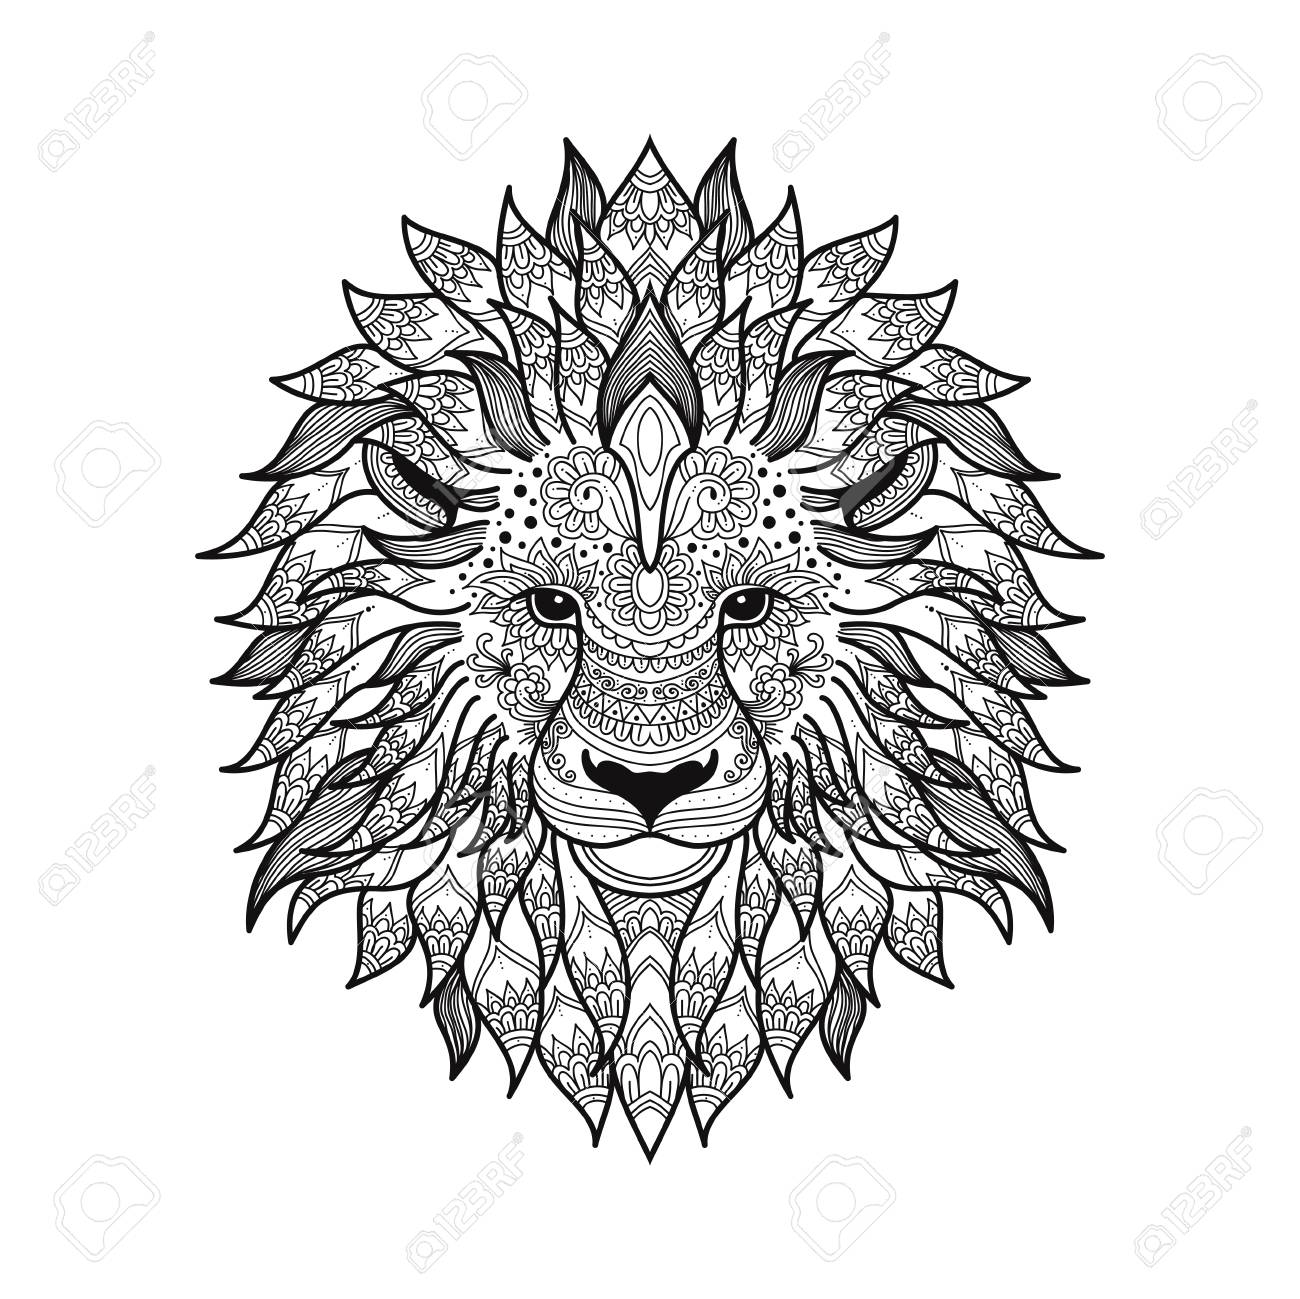 1300x1299 Stylized Lion Head In Zen Tangle Graphic Style With Patterned